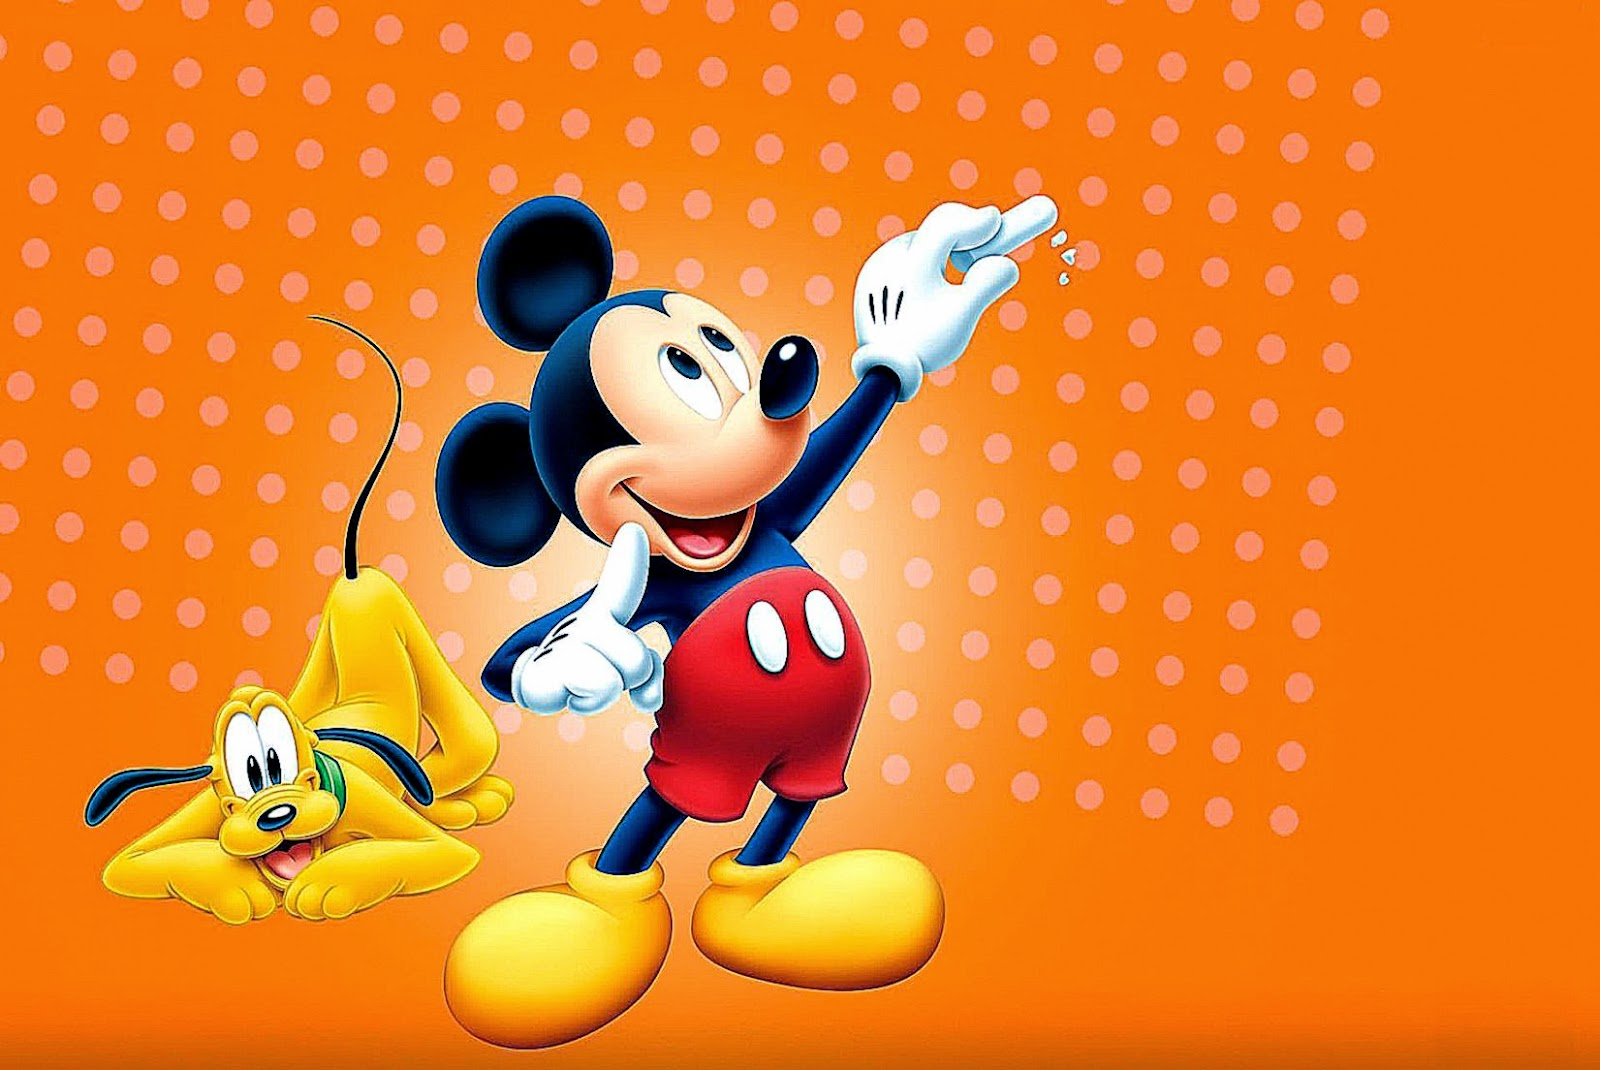 Mickey Mouse Wallpapers   Full HD wallpaper search